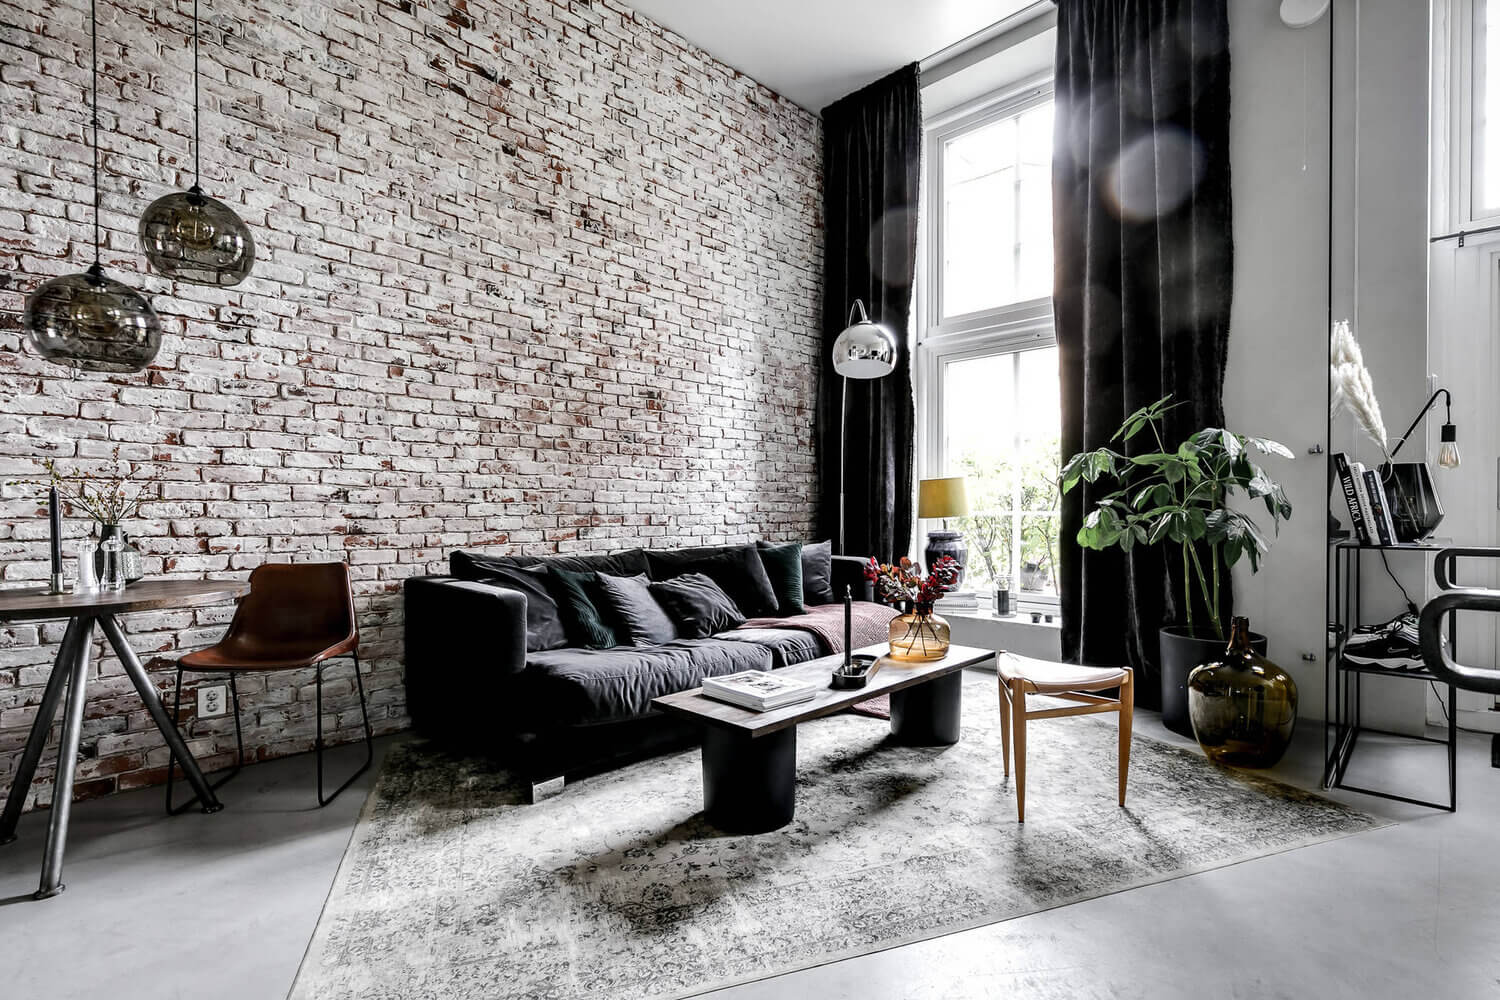 An Industrial Scandinavian Apartment with Exposed Brick Wall